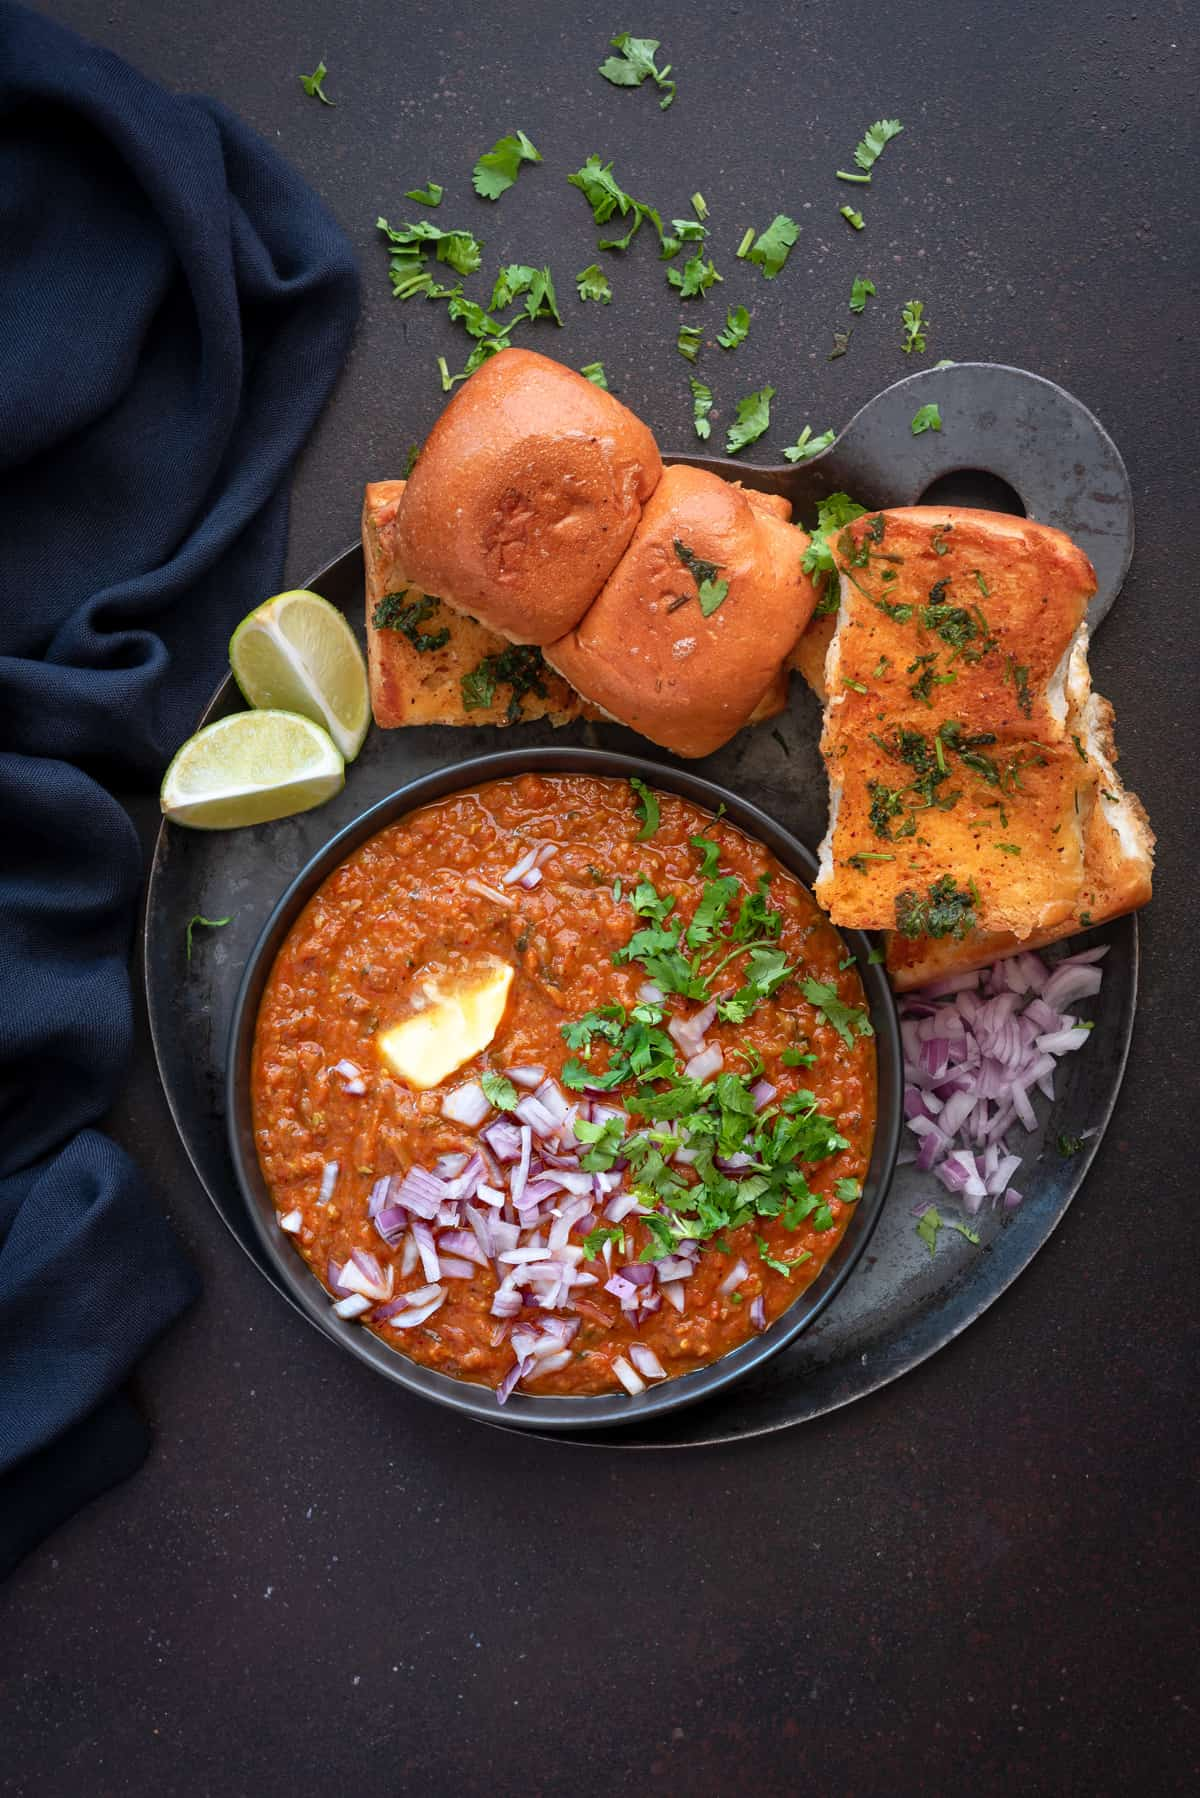 Pav bhaji served in black plate with toasted pav, lemon wedges and chopped onions.